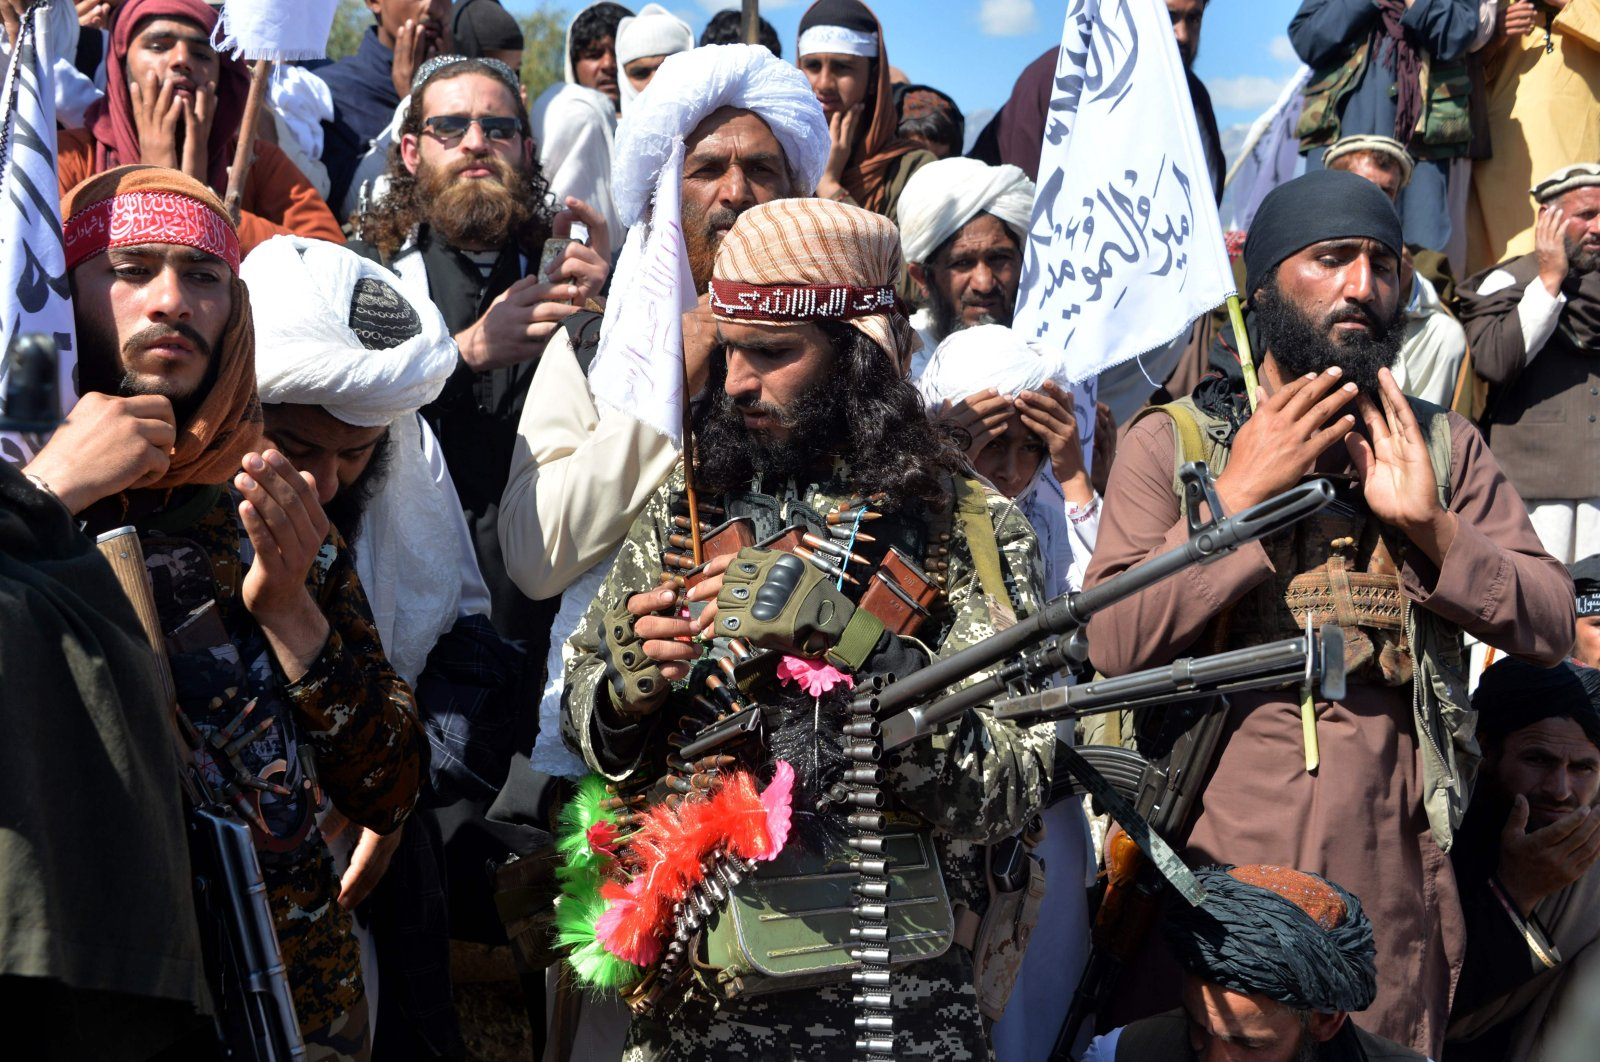 Afghan Taliban militants and villagers attend a gathering as they celebrate the peace deal and their victory in the Afghan conflict on U.S. in Afghanistan, in Alingar district of Laghman Province, March 2, 2020. (AFP Photo)